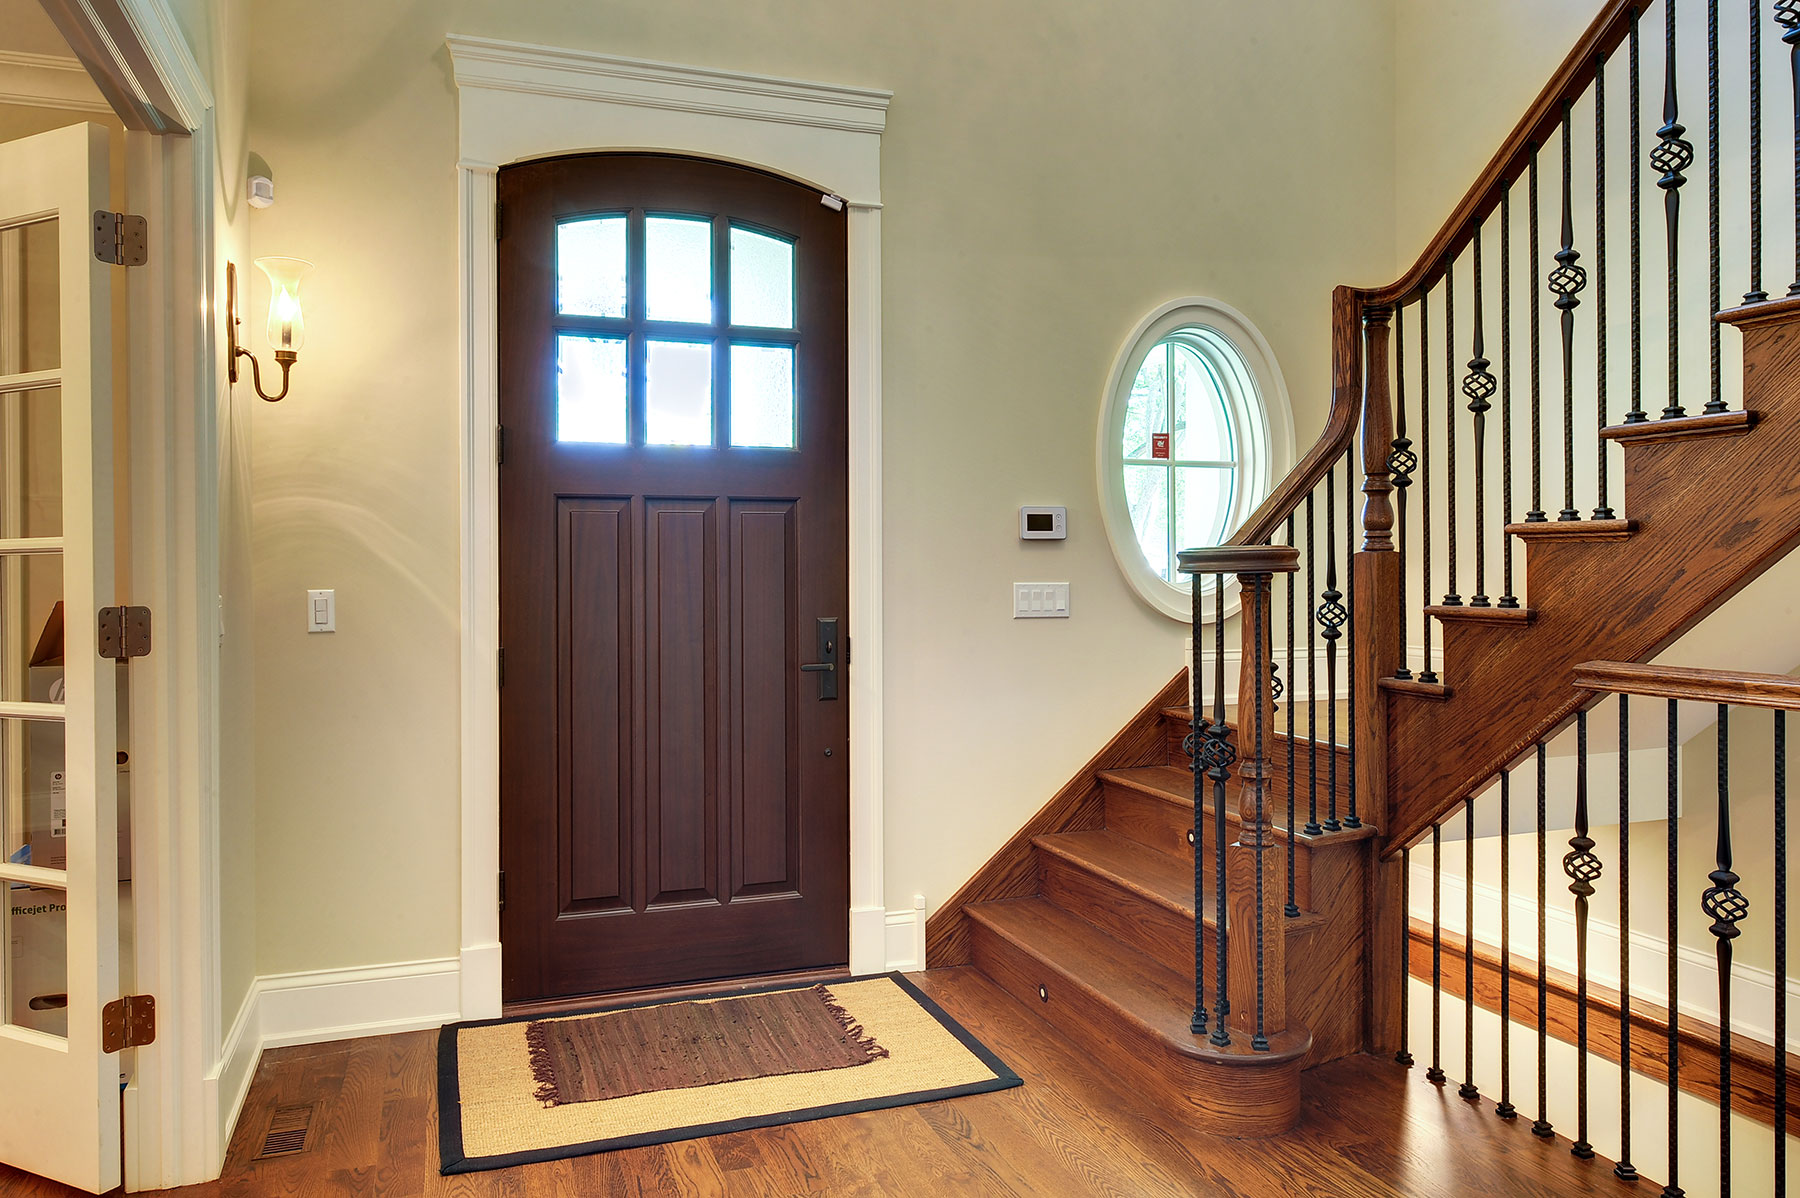 Custom Solid Mahogany Door, Beveled Glue Chip Privacy Glass With Grilles,  Interior View #143